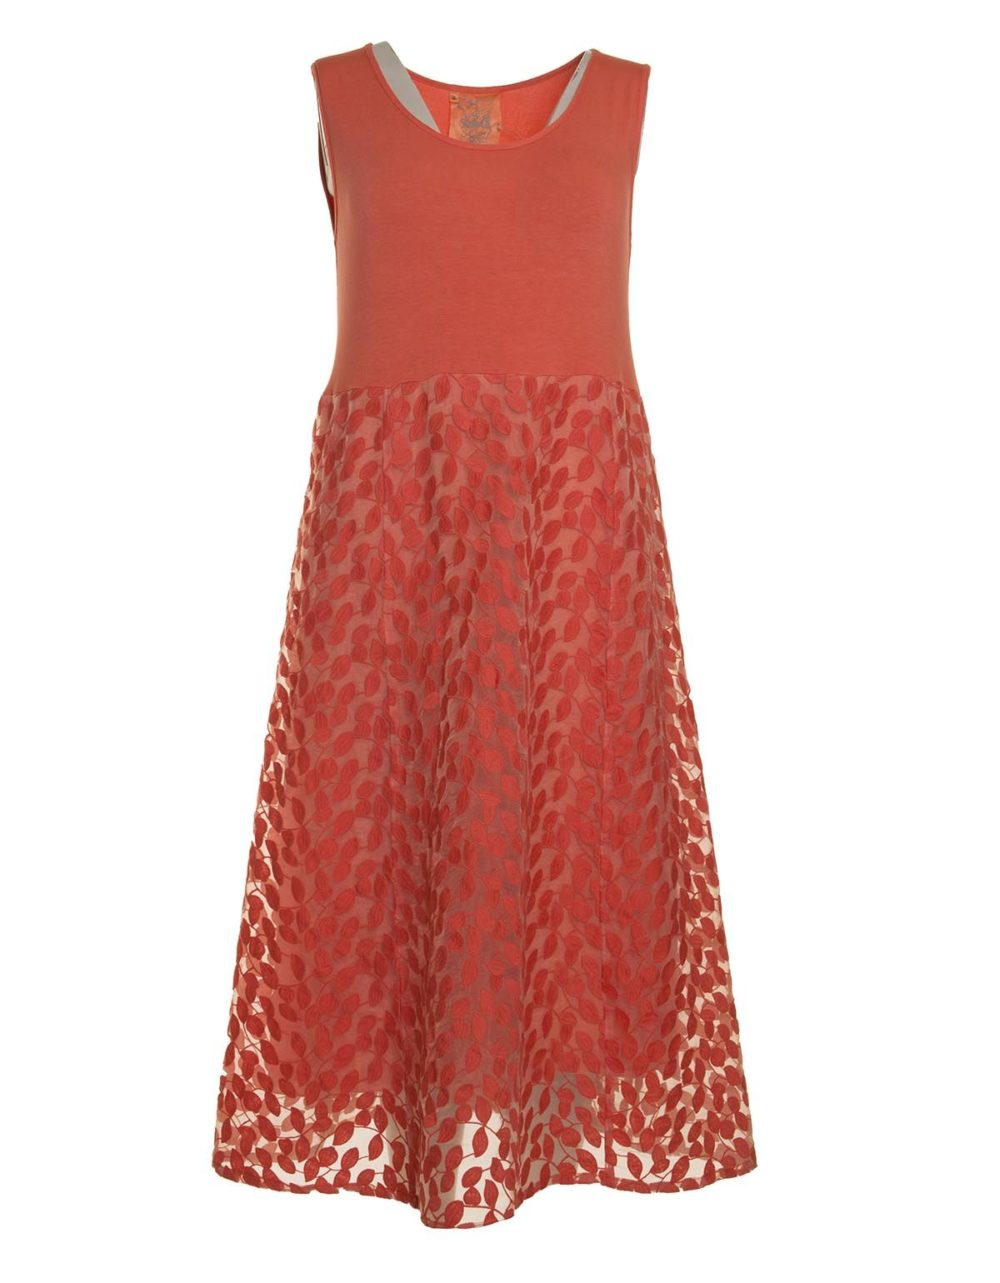 Leaf Embroidery Panel Dress Out of Xile Katie Kerr Women's Clothing